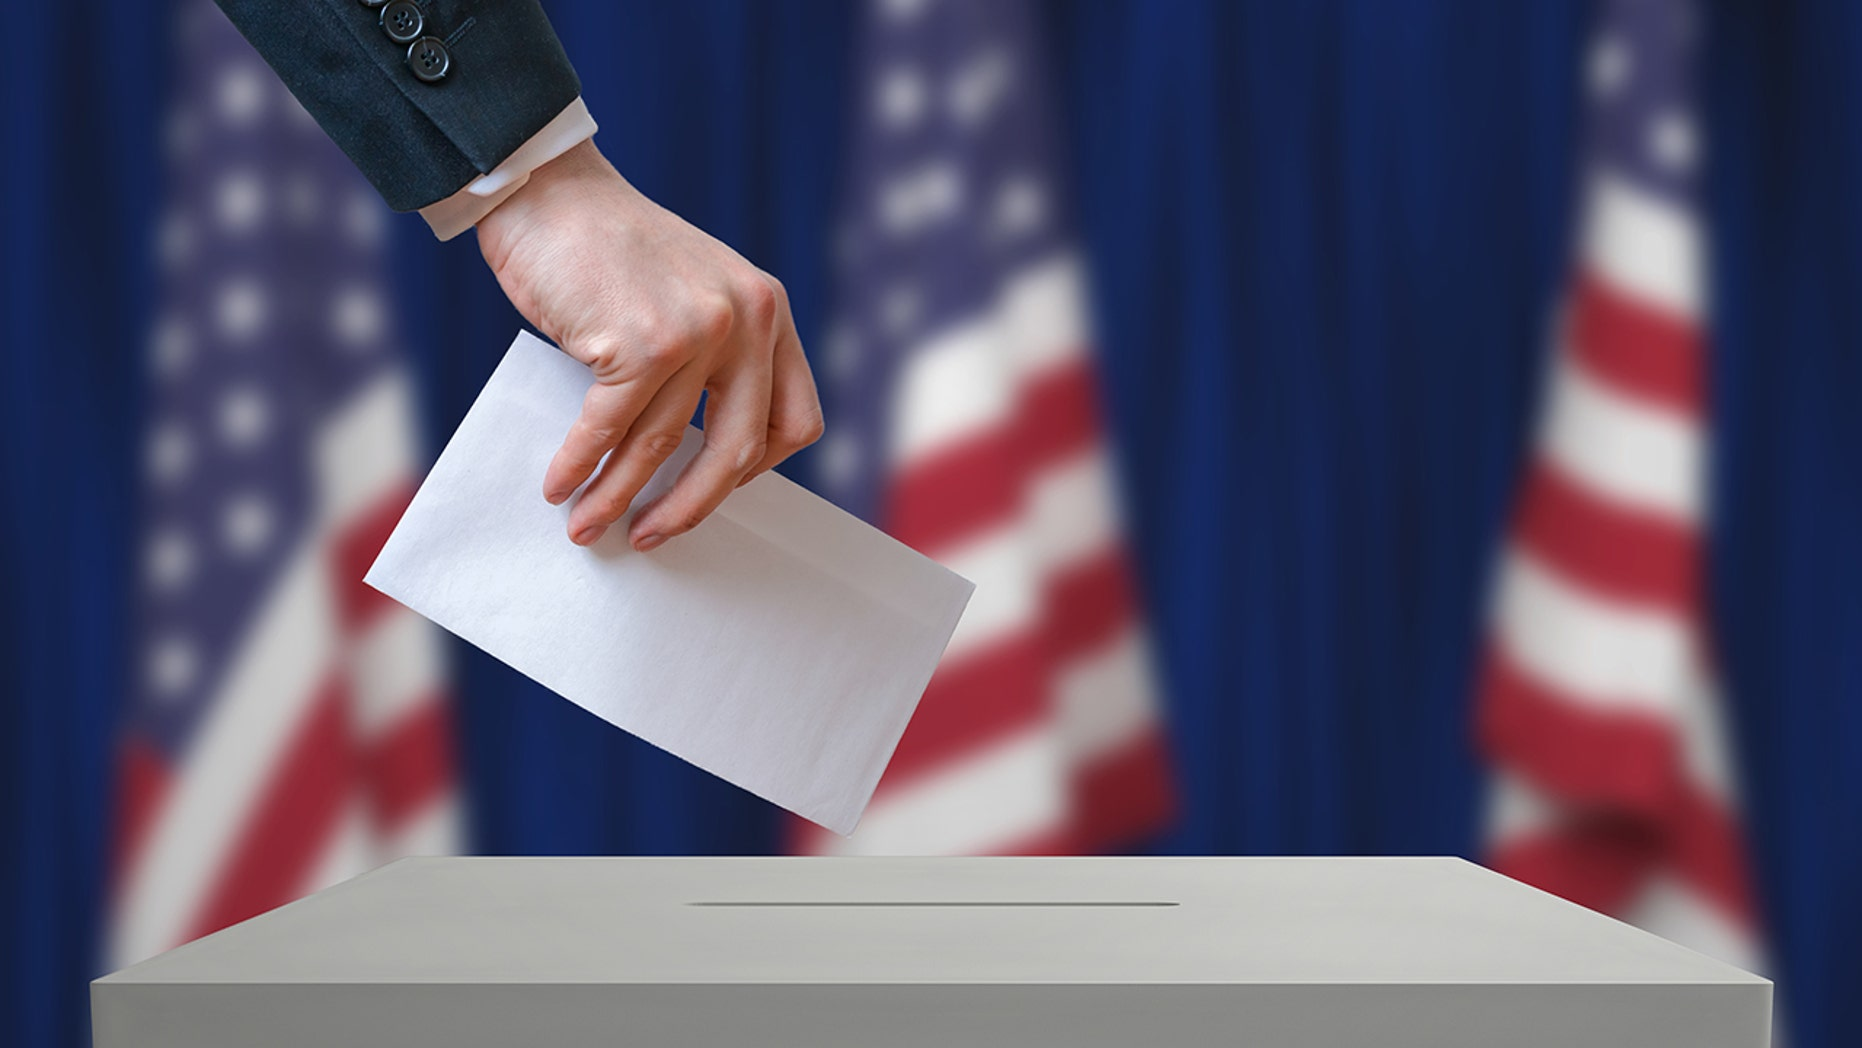 Federal officials have subpoenaed more than 20 million documents related to voter records in North Carolina as part of an investigation into alleged fraud.